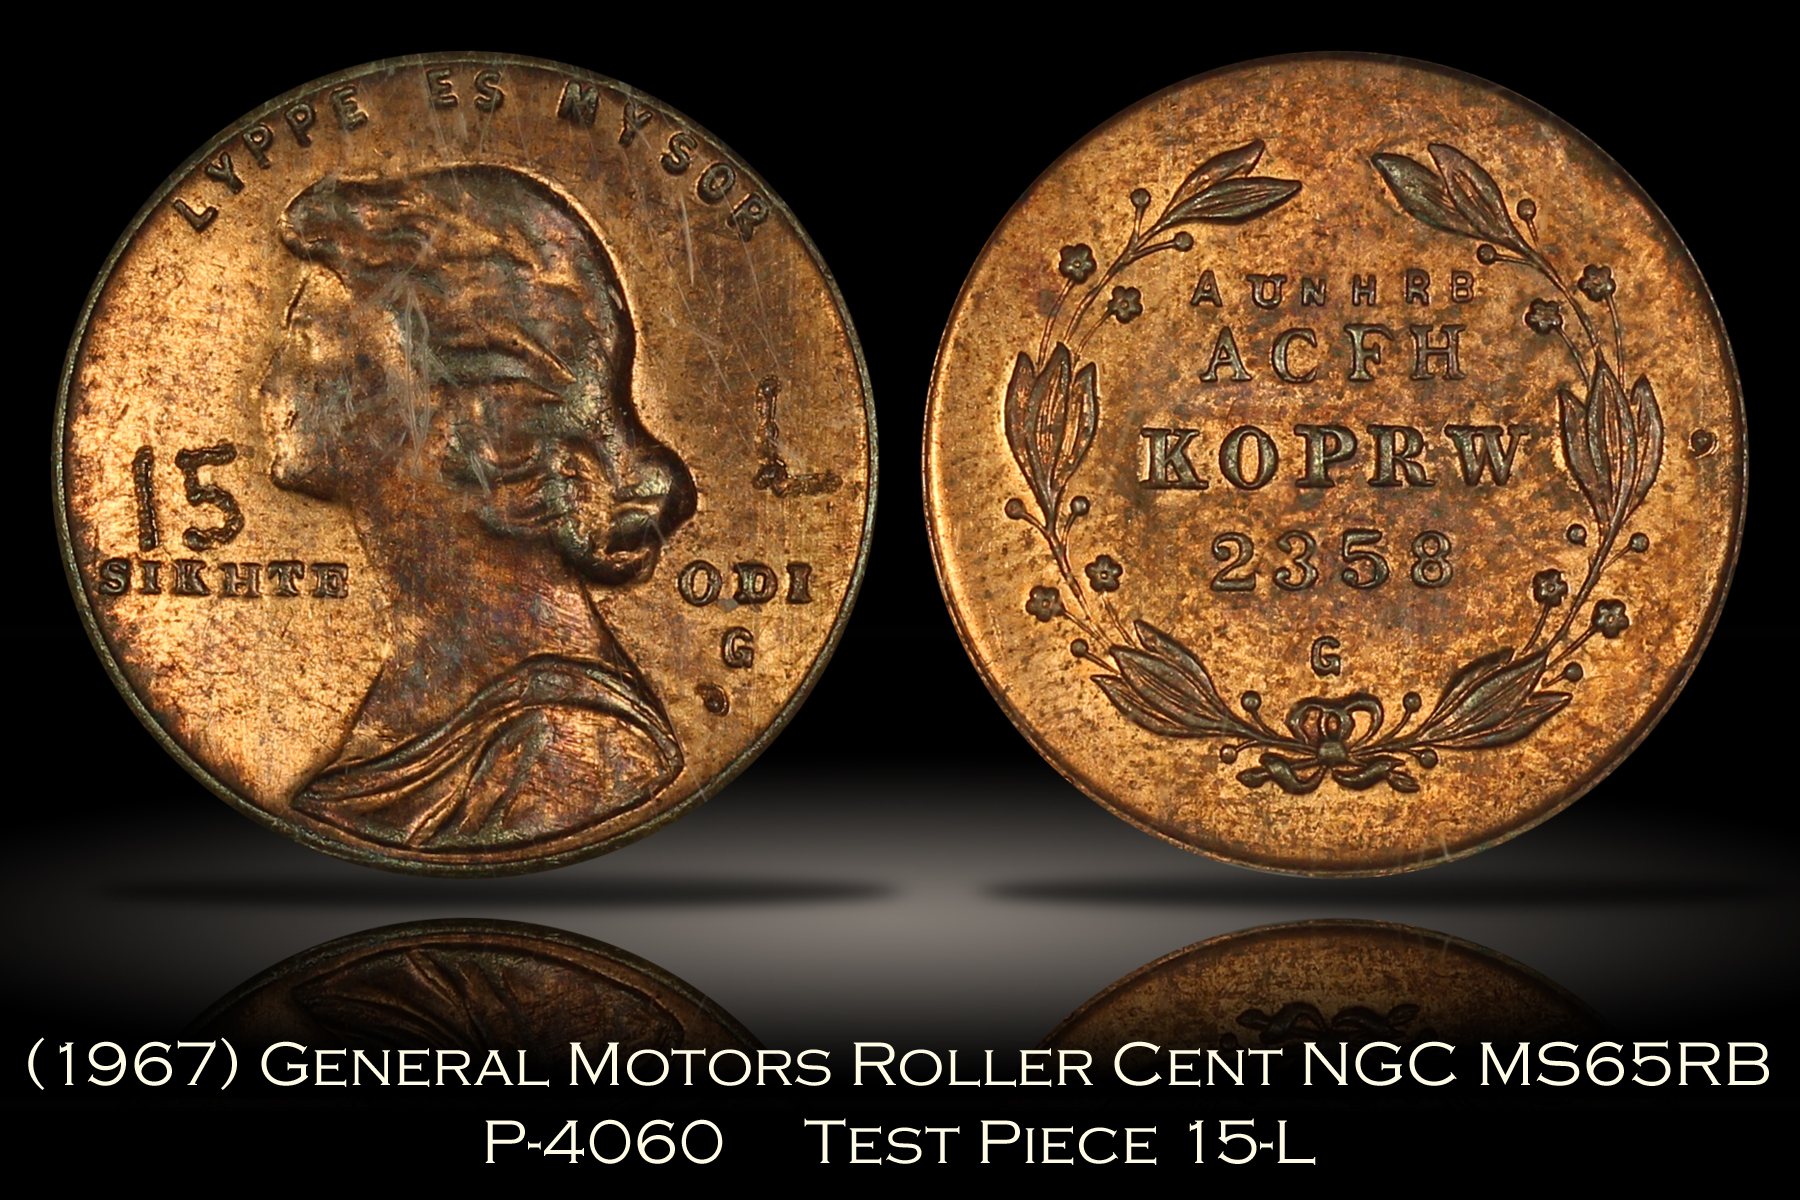 (1967) General Motors Roller Cent Pattern P-4060 NGC MS65RB